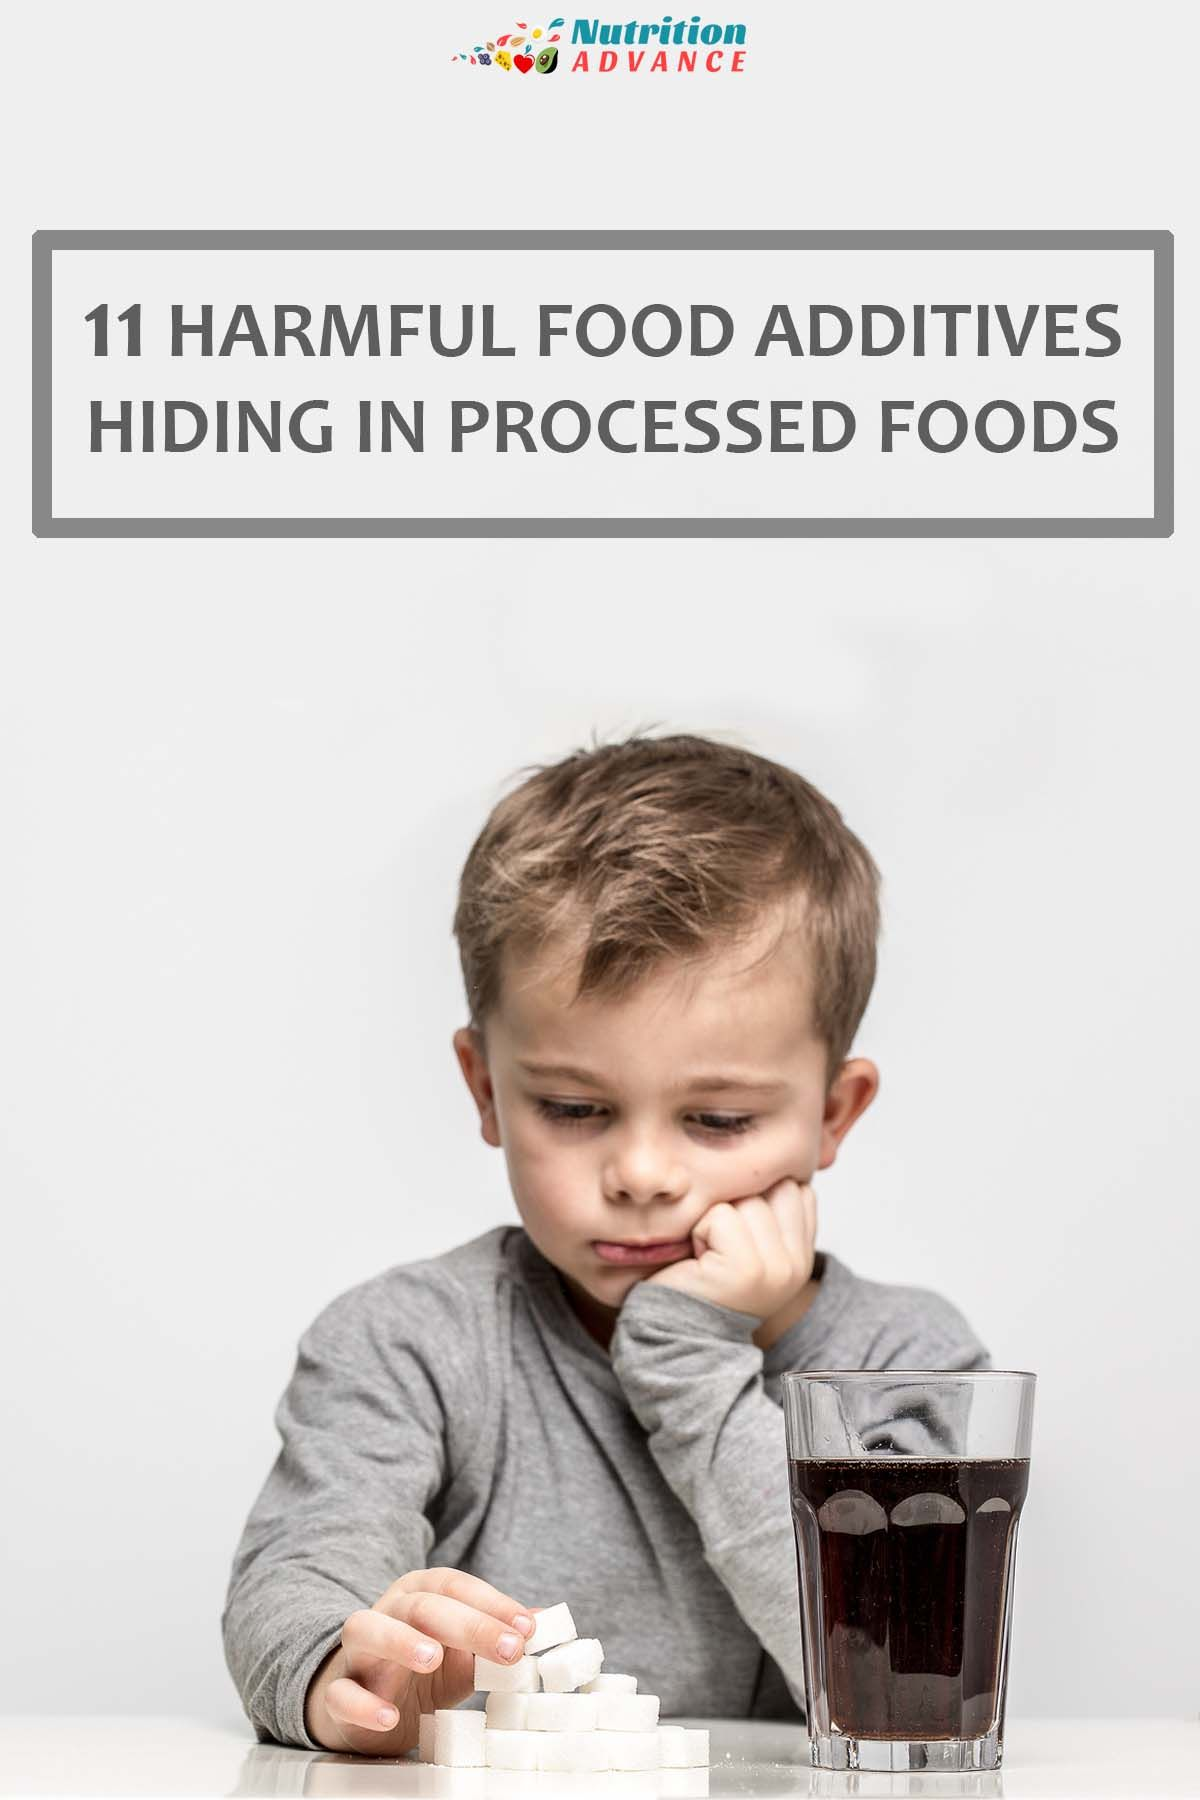 11 Harmful additives hiding in processed foods. Some of these have strong links to cancer, diabetes and heart disease; learn which to avoid. via @nutradvance